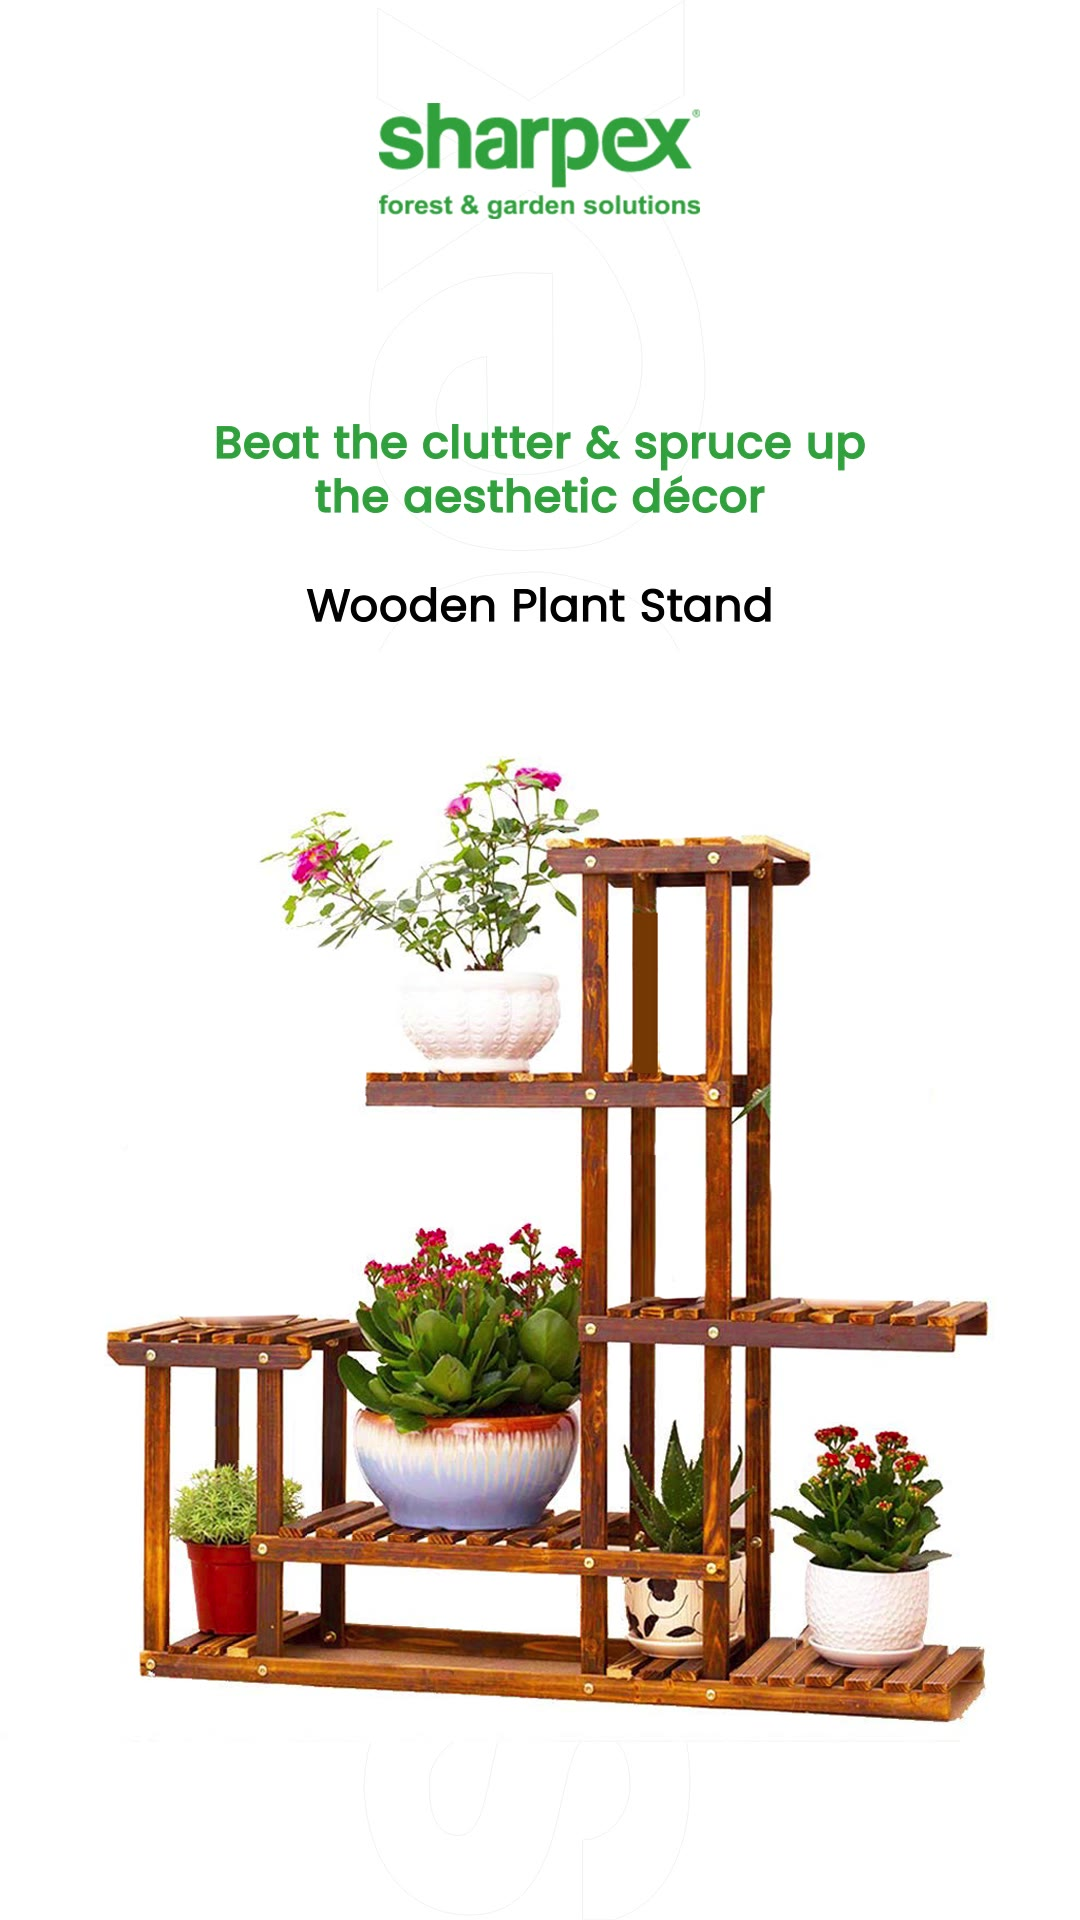 Beat the clutter & spruce up the aesthetic décor.  Bring home the wonderful wooden plant stand!  #WoodenPlantStand #Reels #ReelsOfInstagram #ReelLovers #PlantDecor #GardeningAccessories #GardeningTools #ModernGardeningTools #GardeningProducts #GardenProducts #Sharpex #SharpexIndia